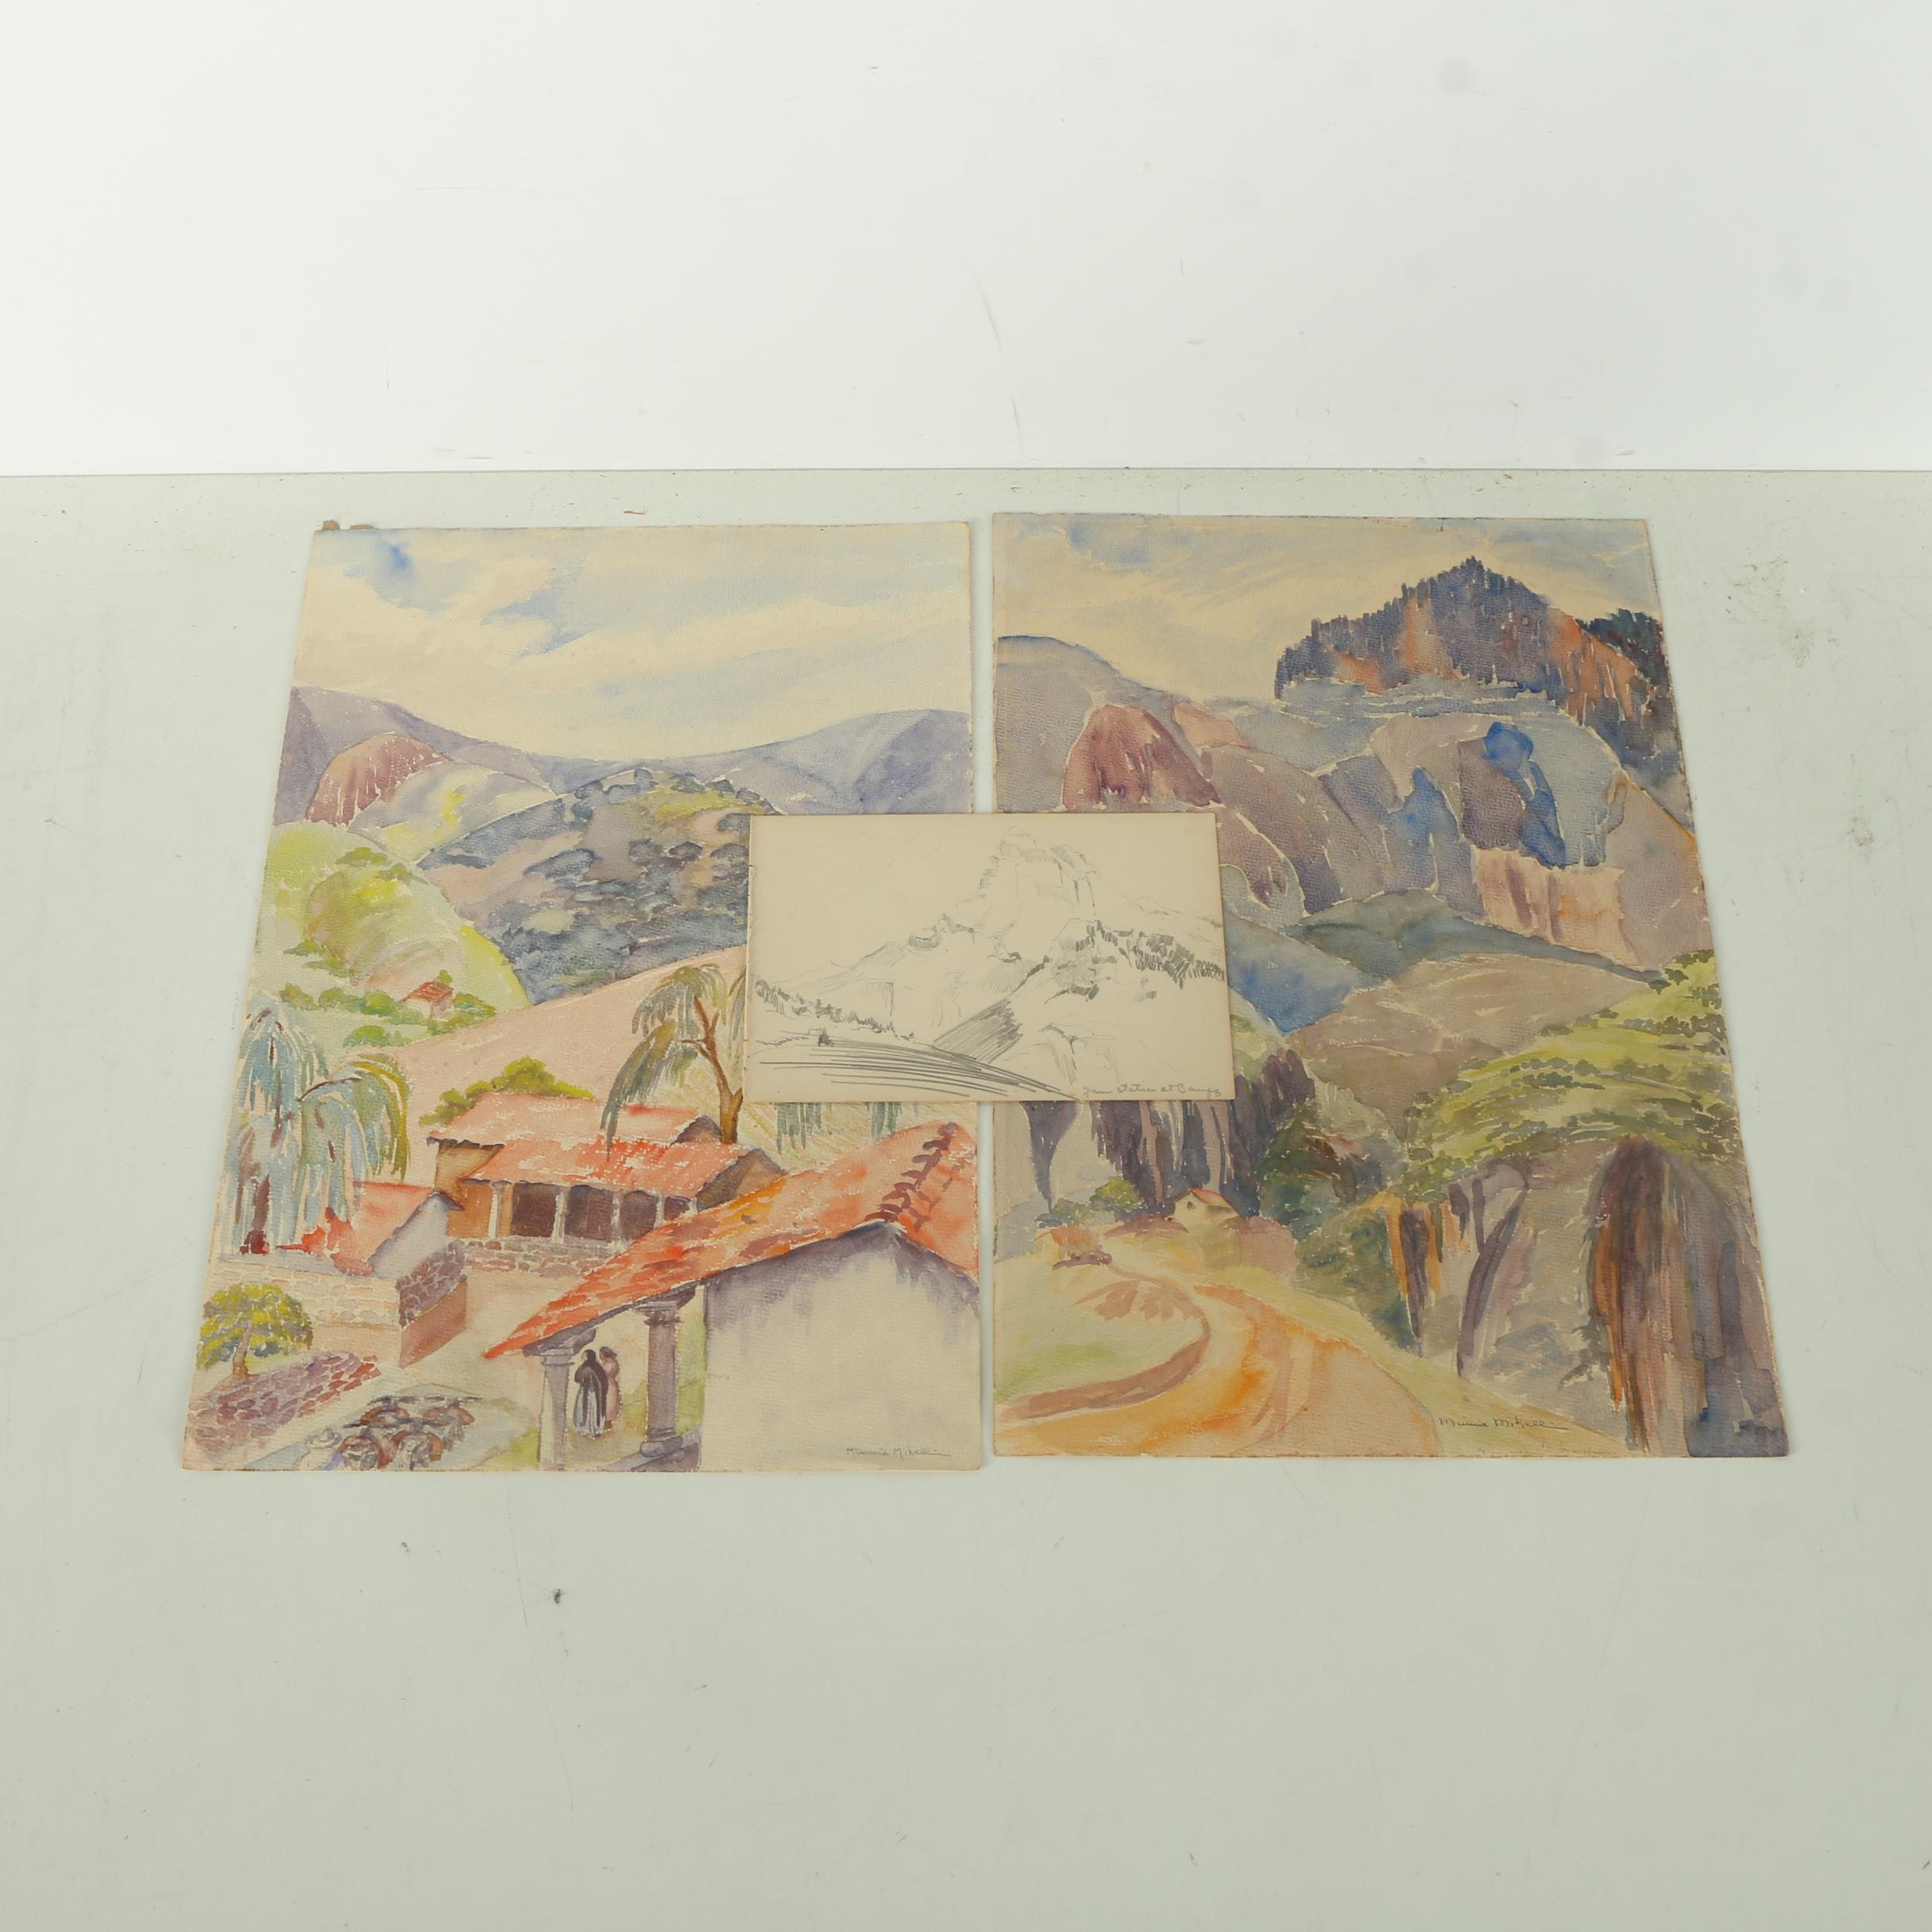 Assortment of Minnie Mikell Landscape Art on Paper